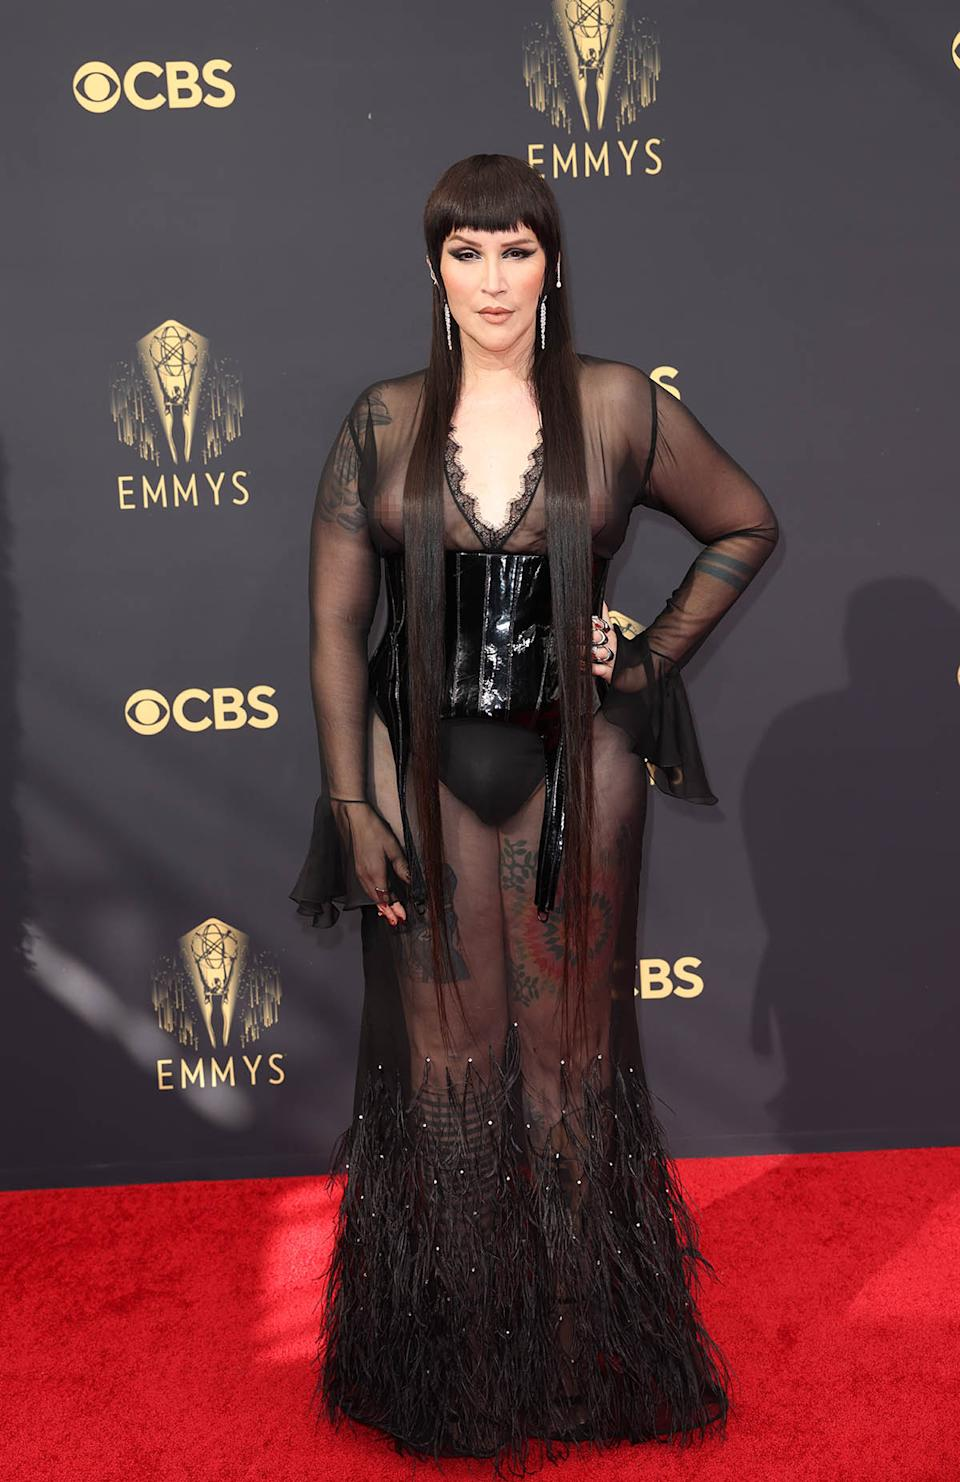 Our Lady J wears a sheer black dress with feathers on the red carpet for the 73rd Annual Emmy Awards taking place at LA Live on Sunday, Sept. 19, 2021 in Los Angeles, CA. (Jay L. Clendenin / Los Angeles Times via Getty Images)